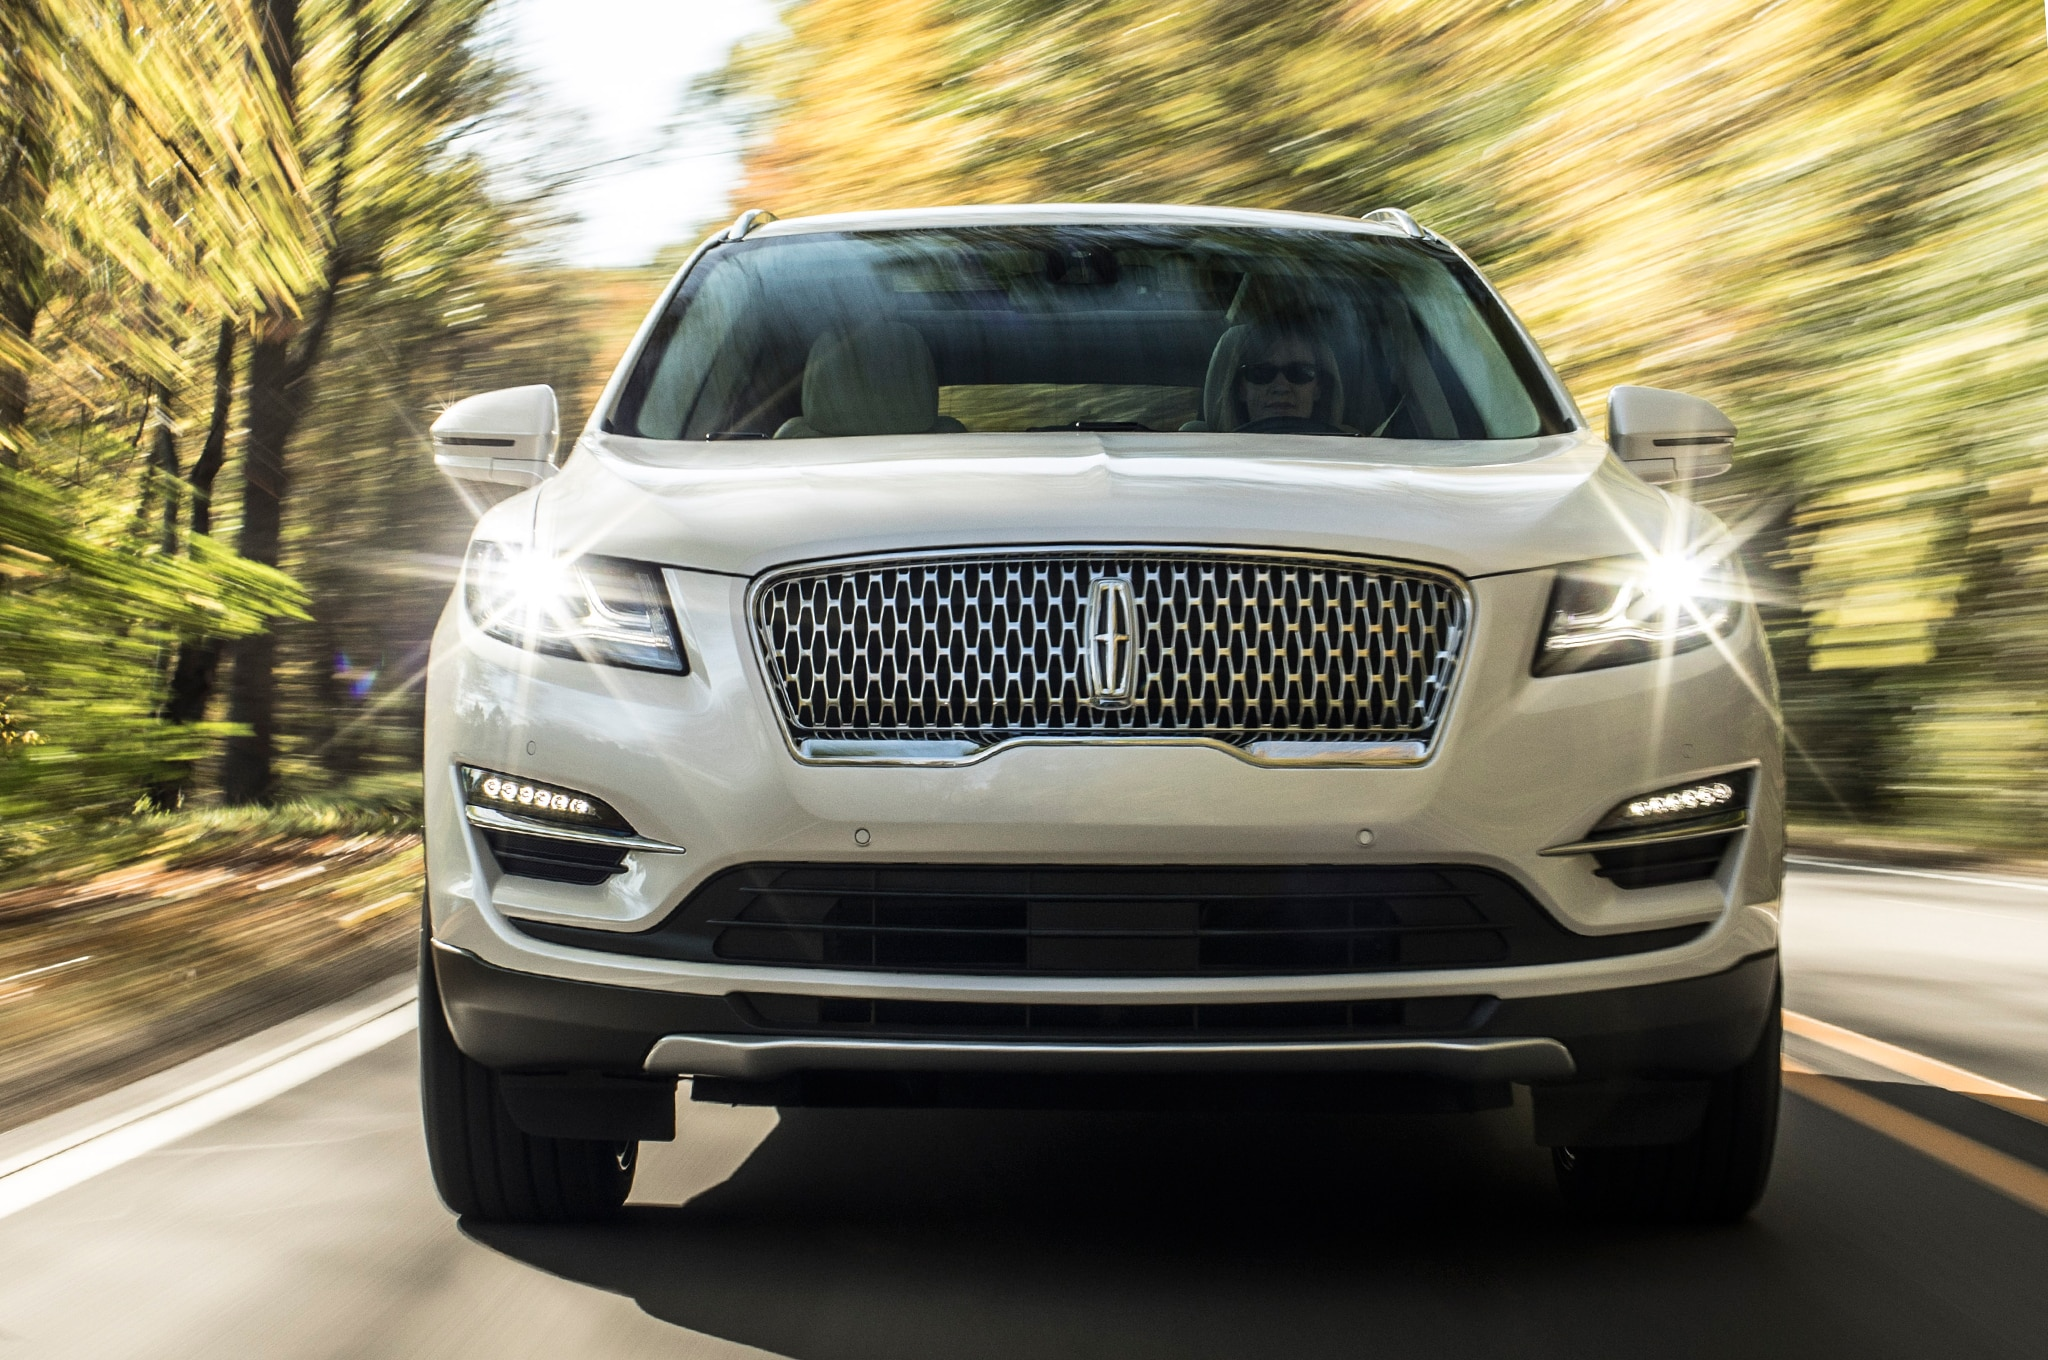 Lincoln slaps new grille on facelifted 2019 MKC